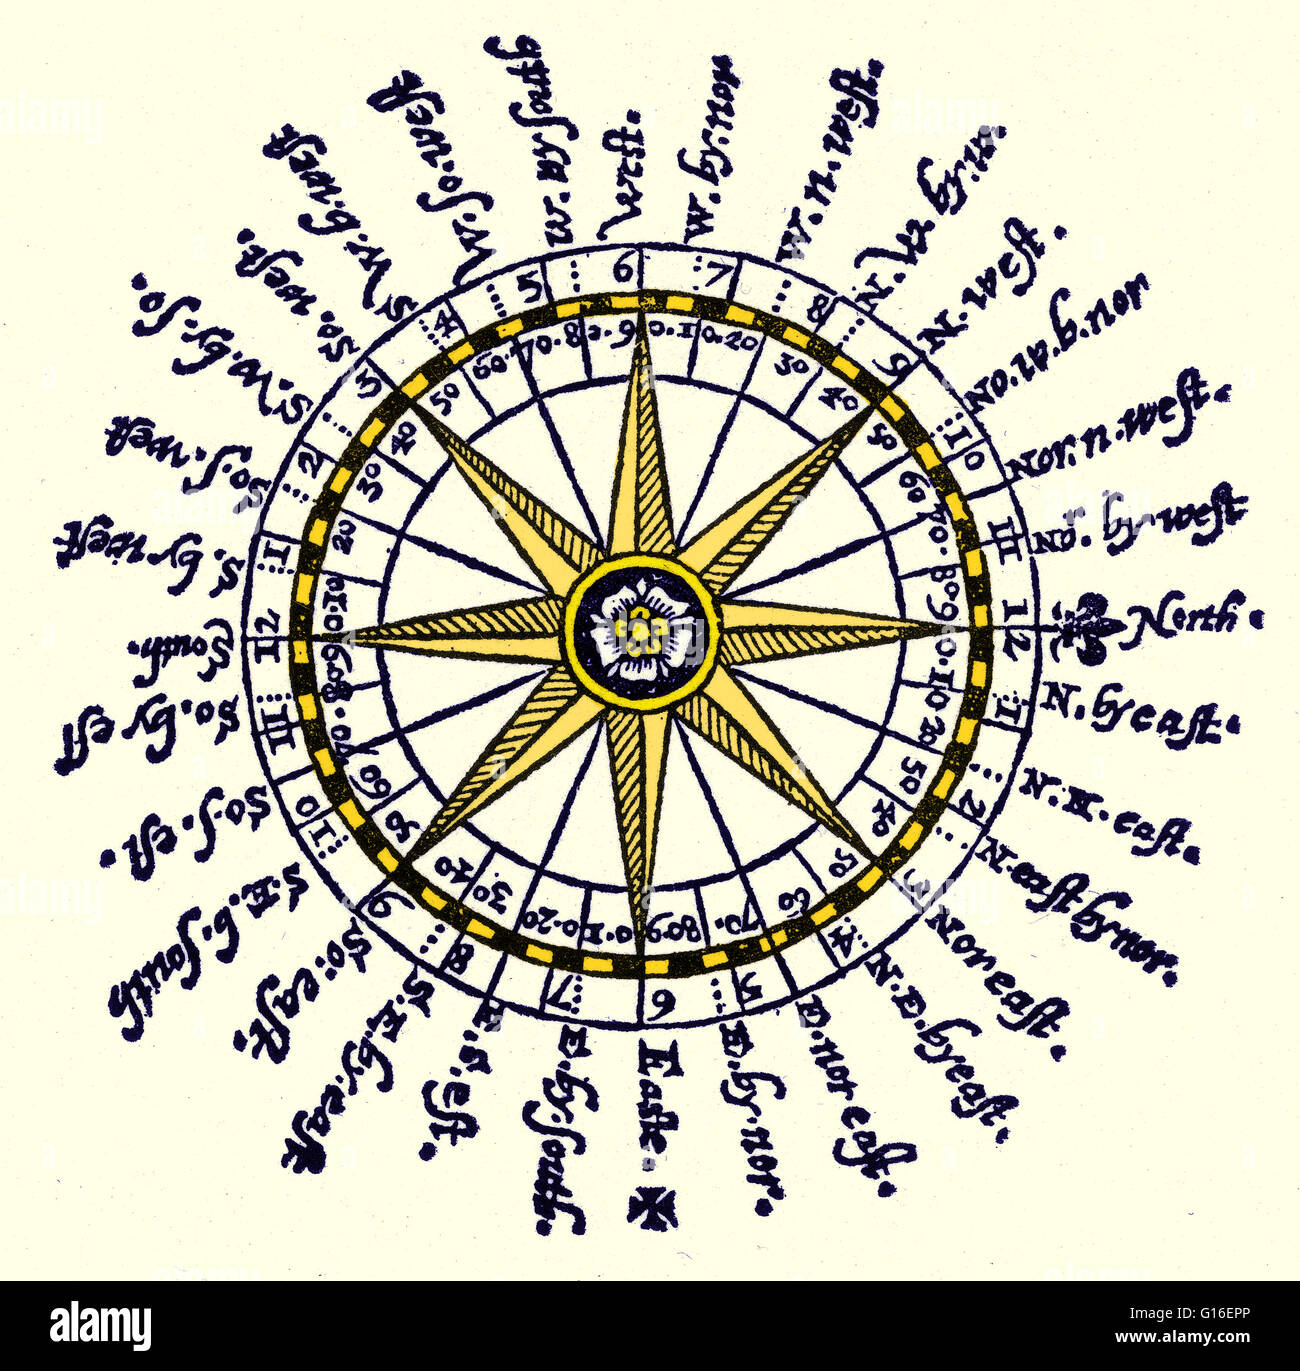 The Compass Rose Is An Old Design Element Found On Compasses Maps